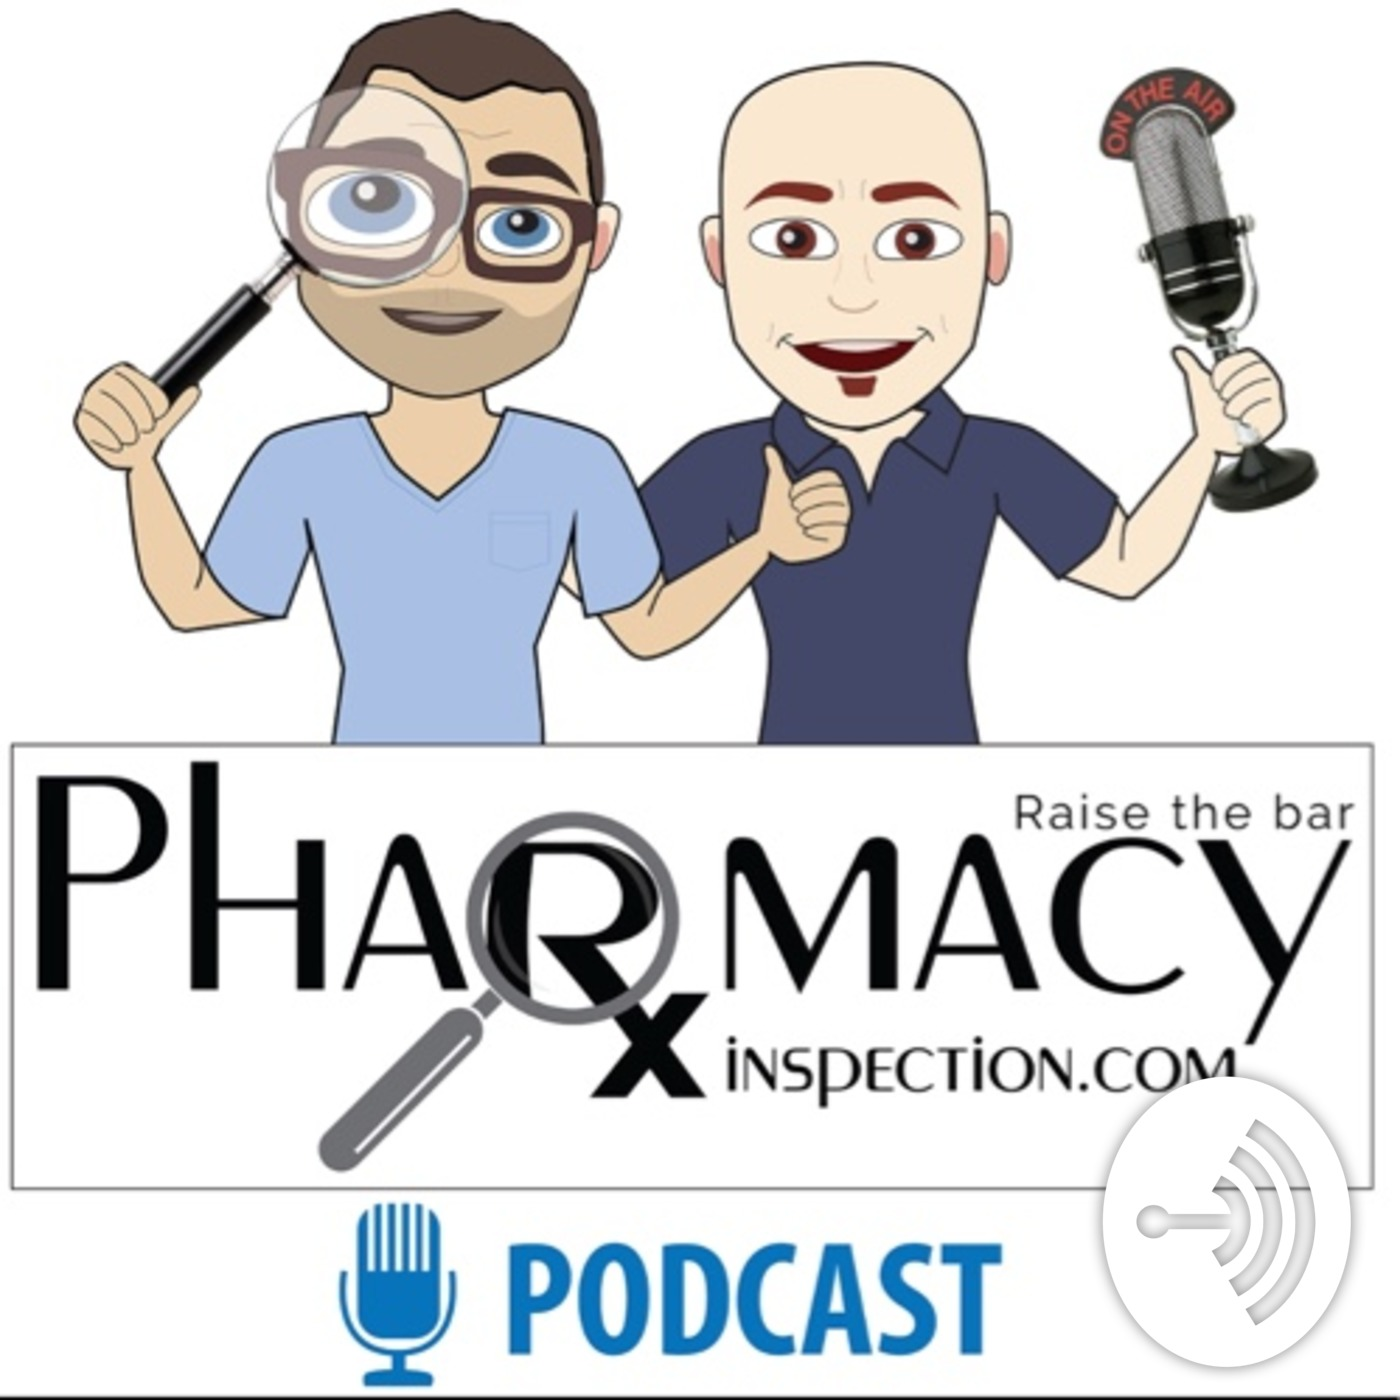 Pharmacy Inspection Podcast Ep 20 - Endotoxin v Endospores